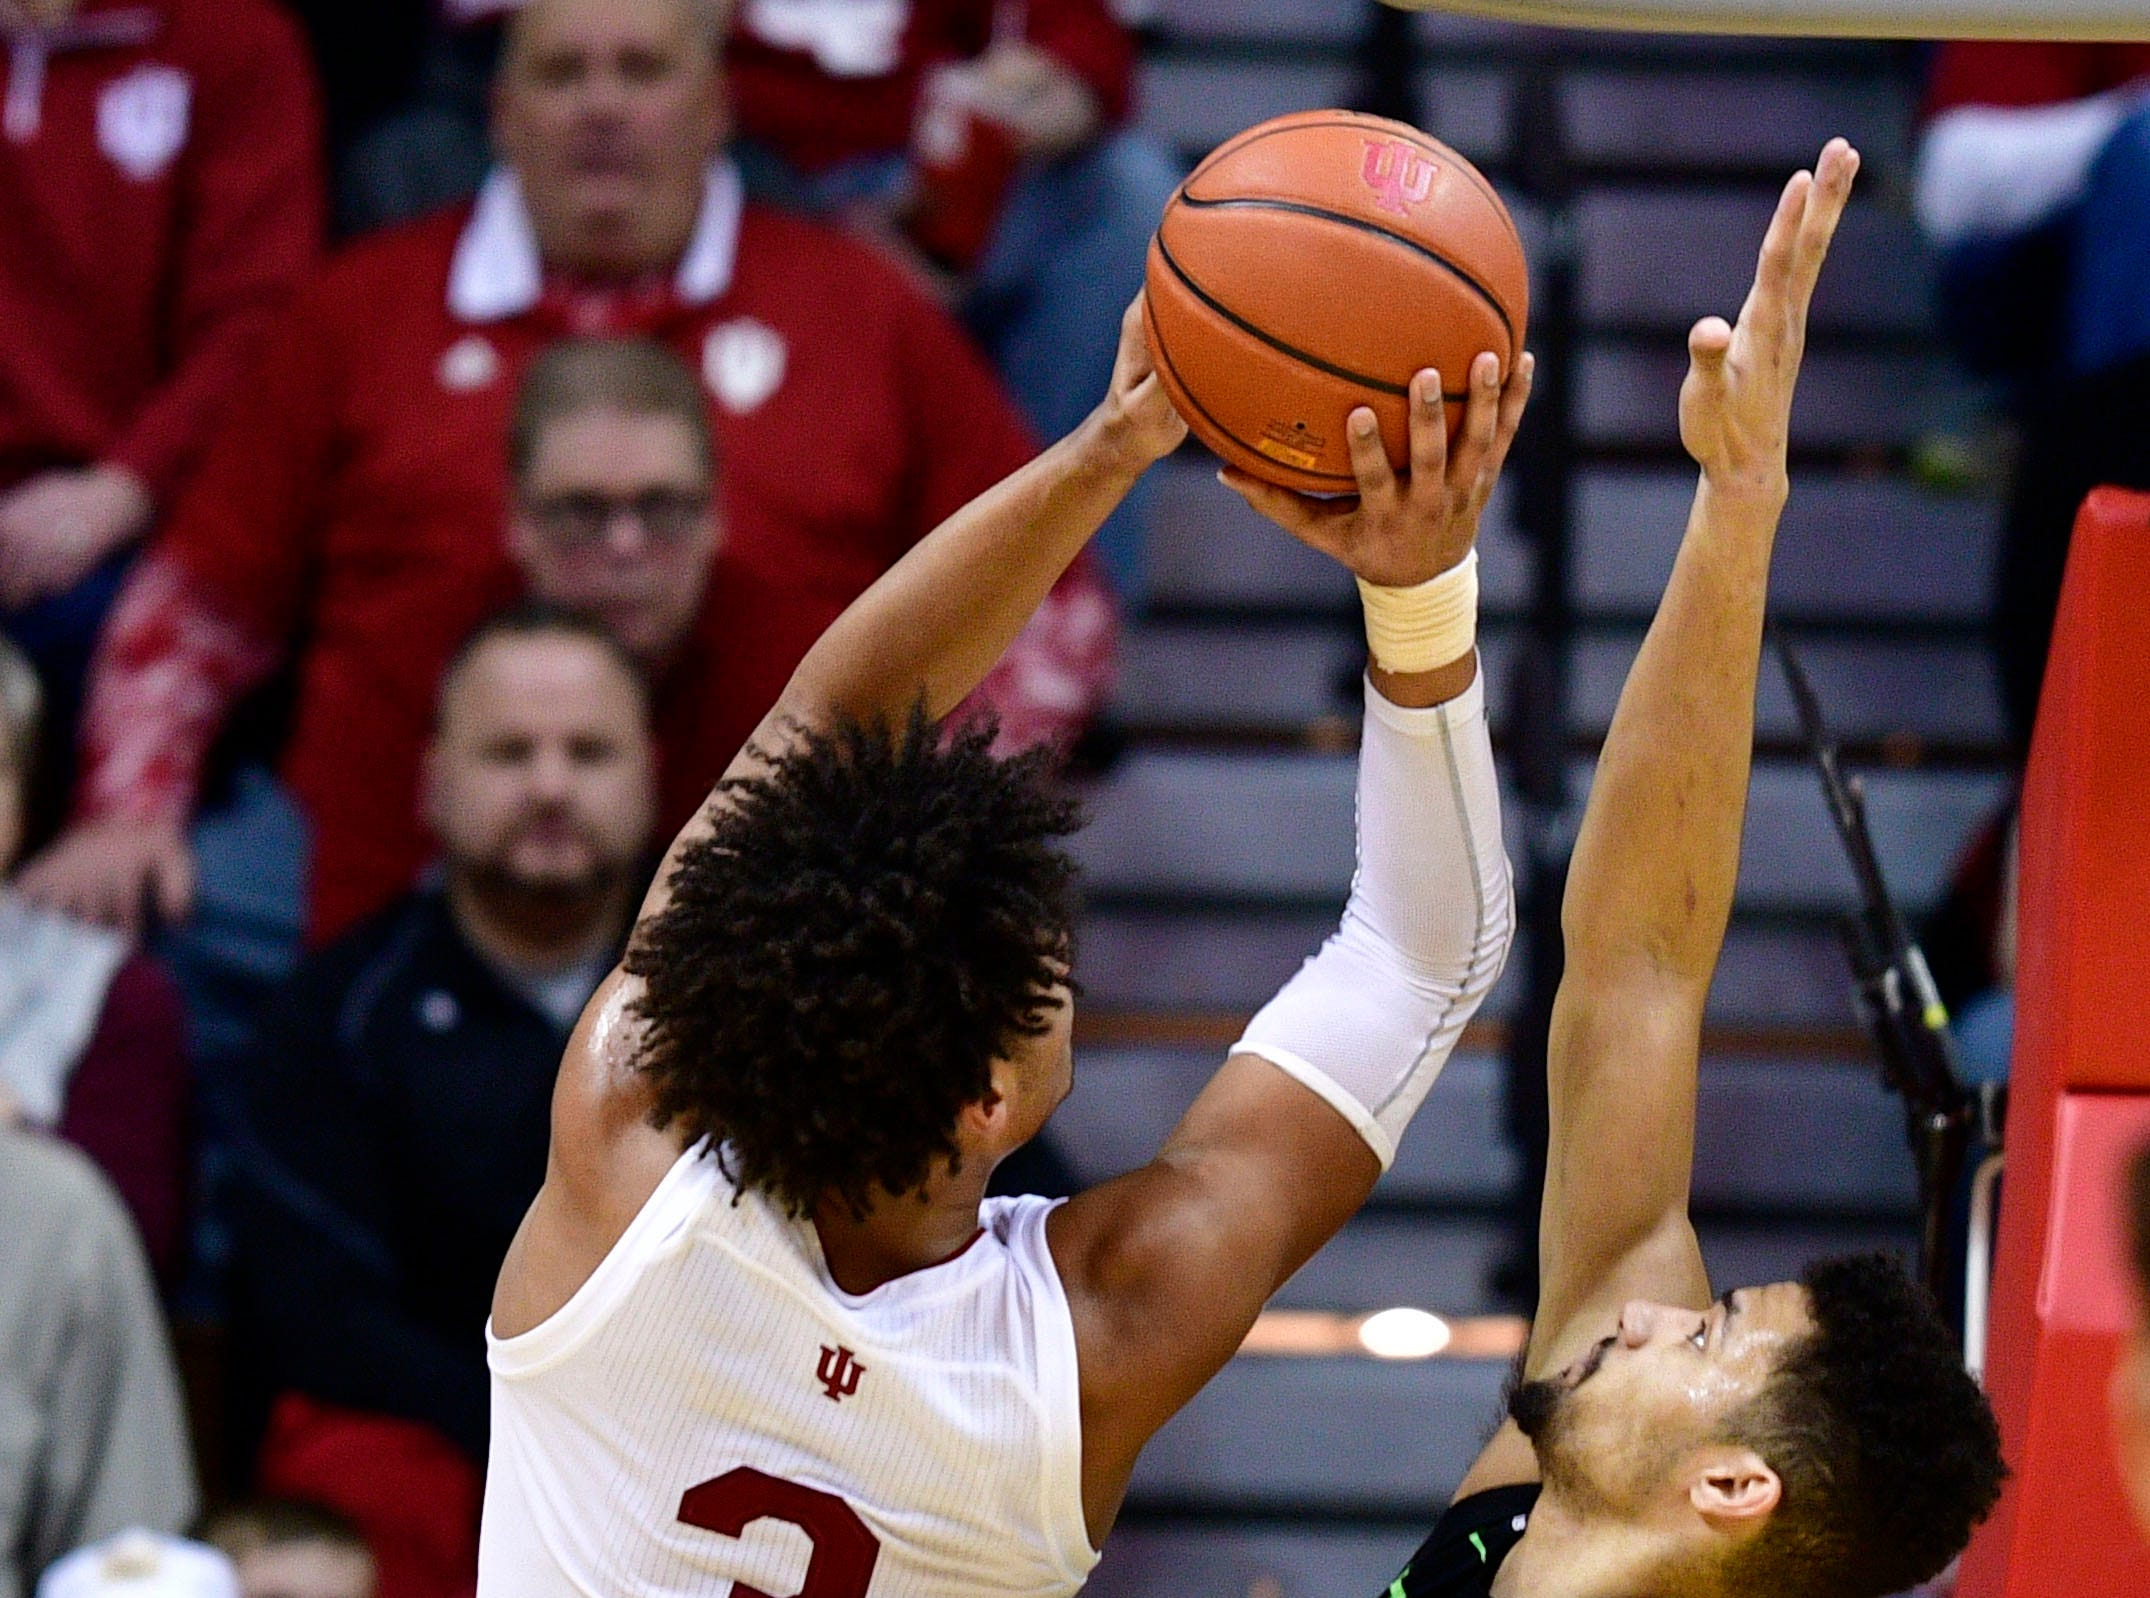 Mar 2, 2019; Bloomington, IN, USA; Michigan State Spartans forward Kenny Goins (25) attempts to block a shot by Indiana Hoosiers forward Justin Smith (3) during the second half of the game at Assembly Hall.The Indiana Hoosiers defeated the Michigan State Spartans at the last second 63 to 62. Mandatory Credit: Marc Lebryk-USA TODAY Sports